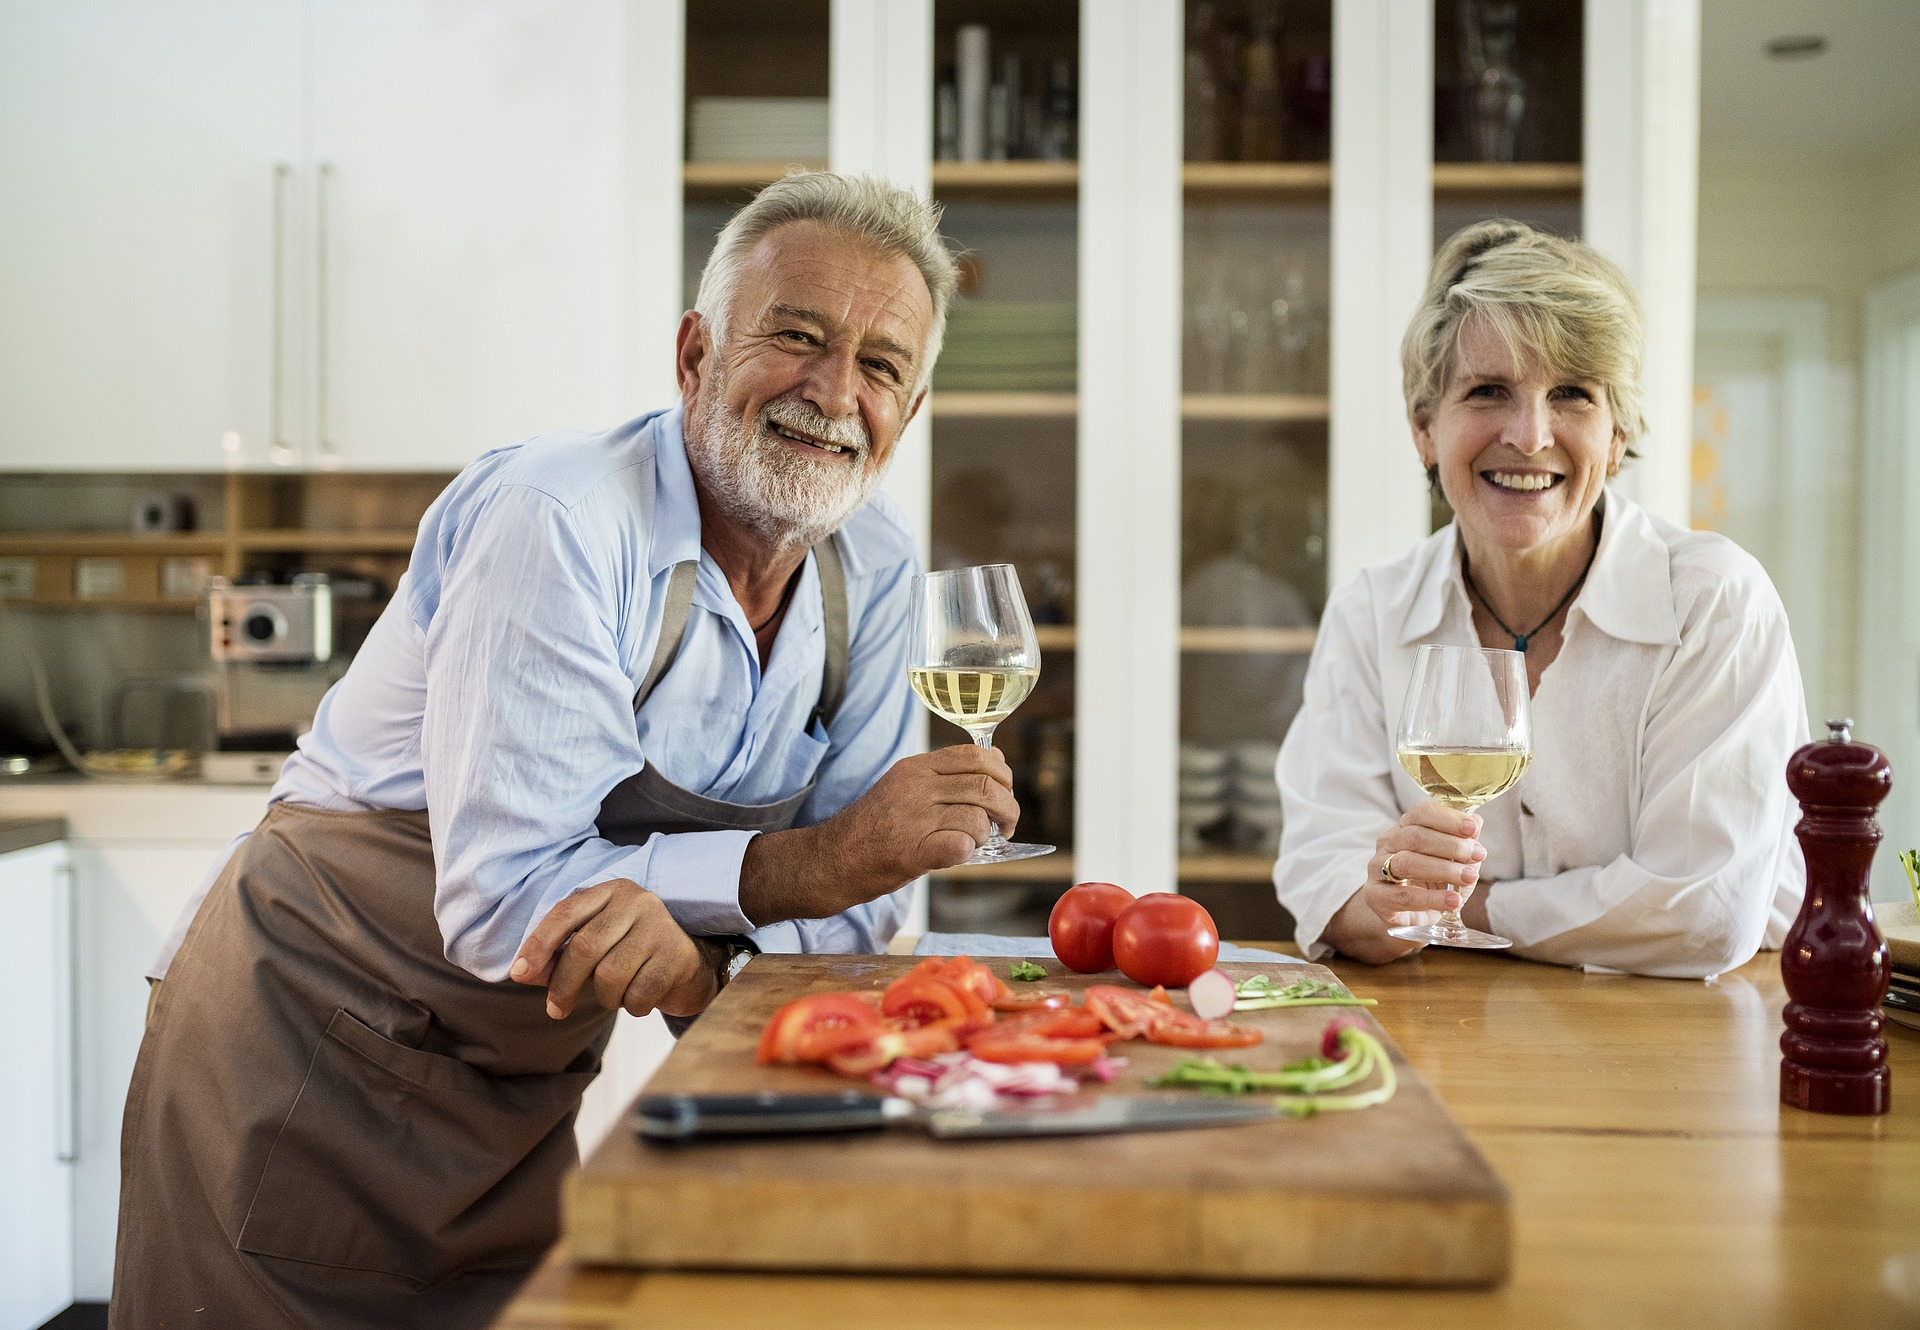 Couple preparing a meal